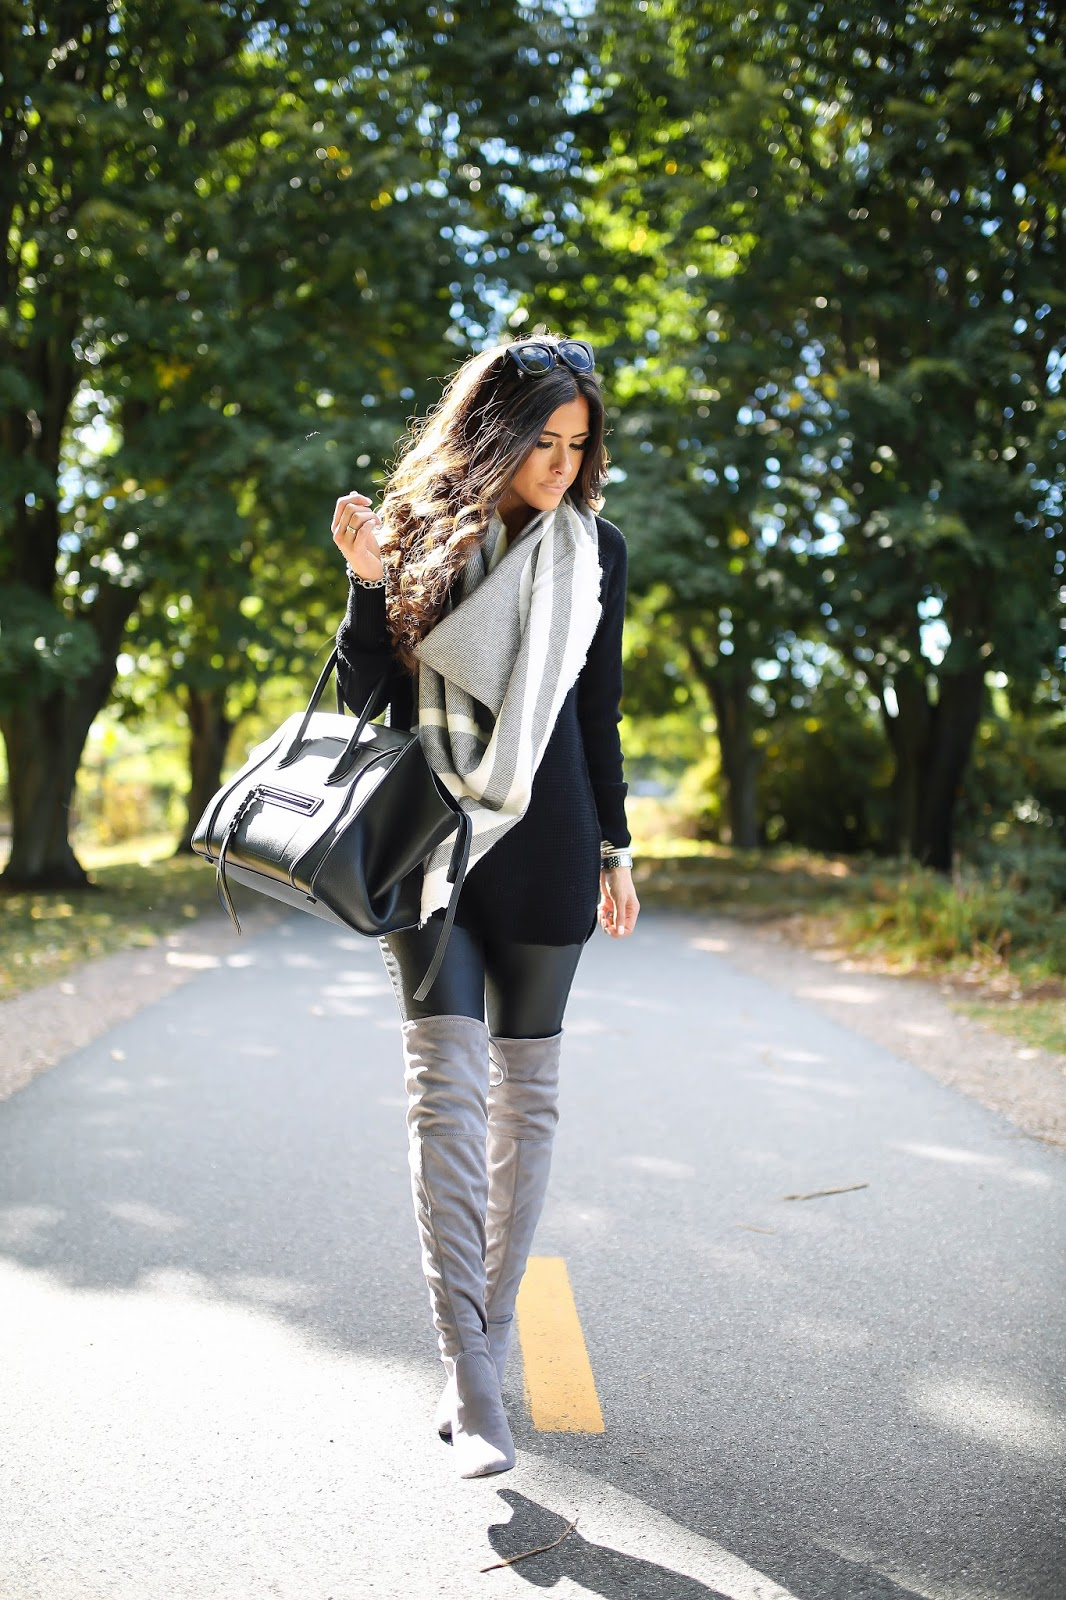 dea6f90103b Over The Knee Boots w Faux Leather Leggings